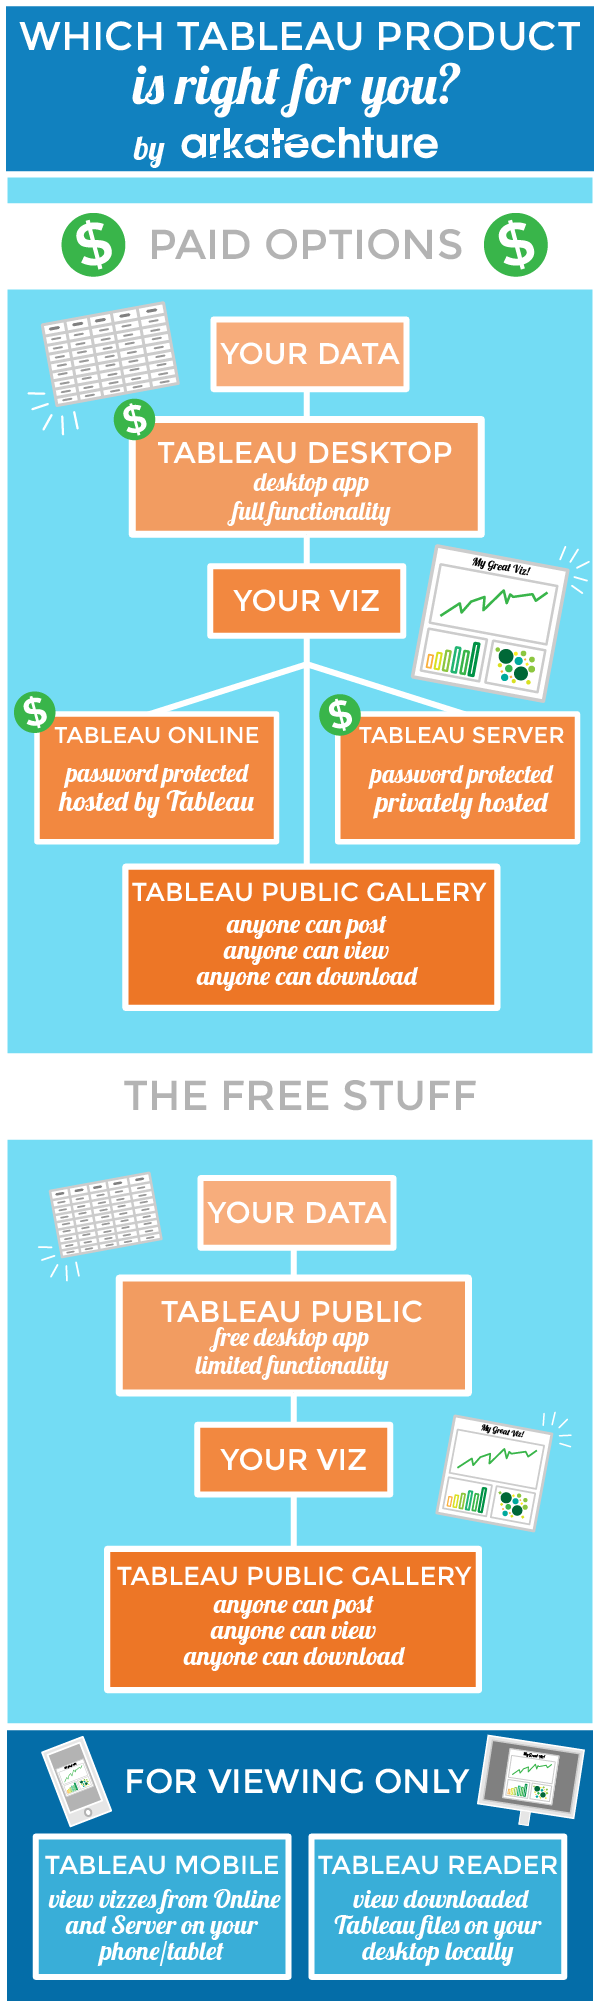 what_tableau_product_infographic.png